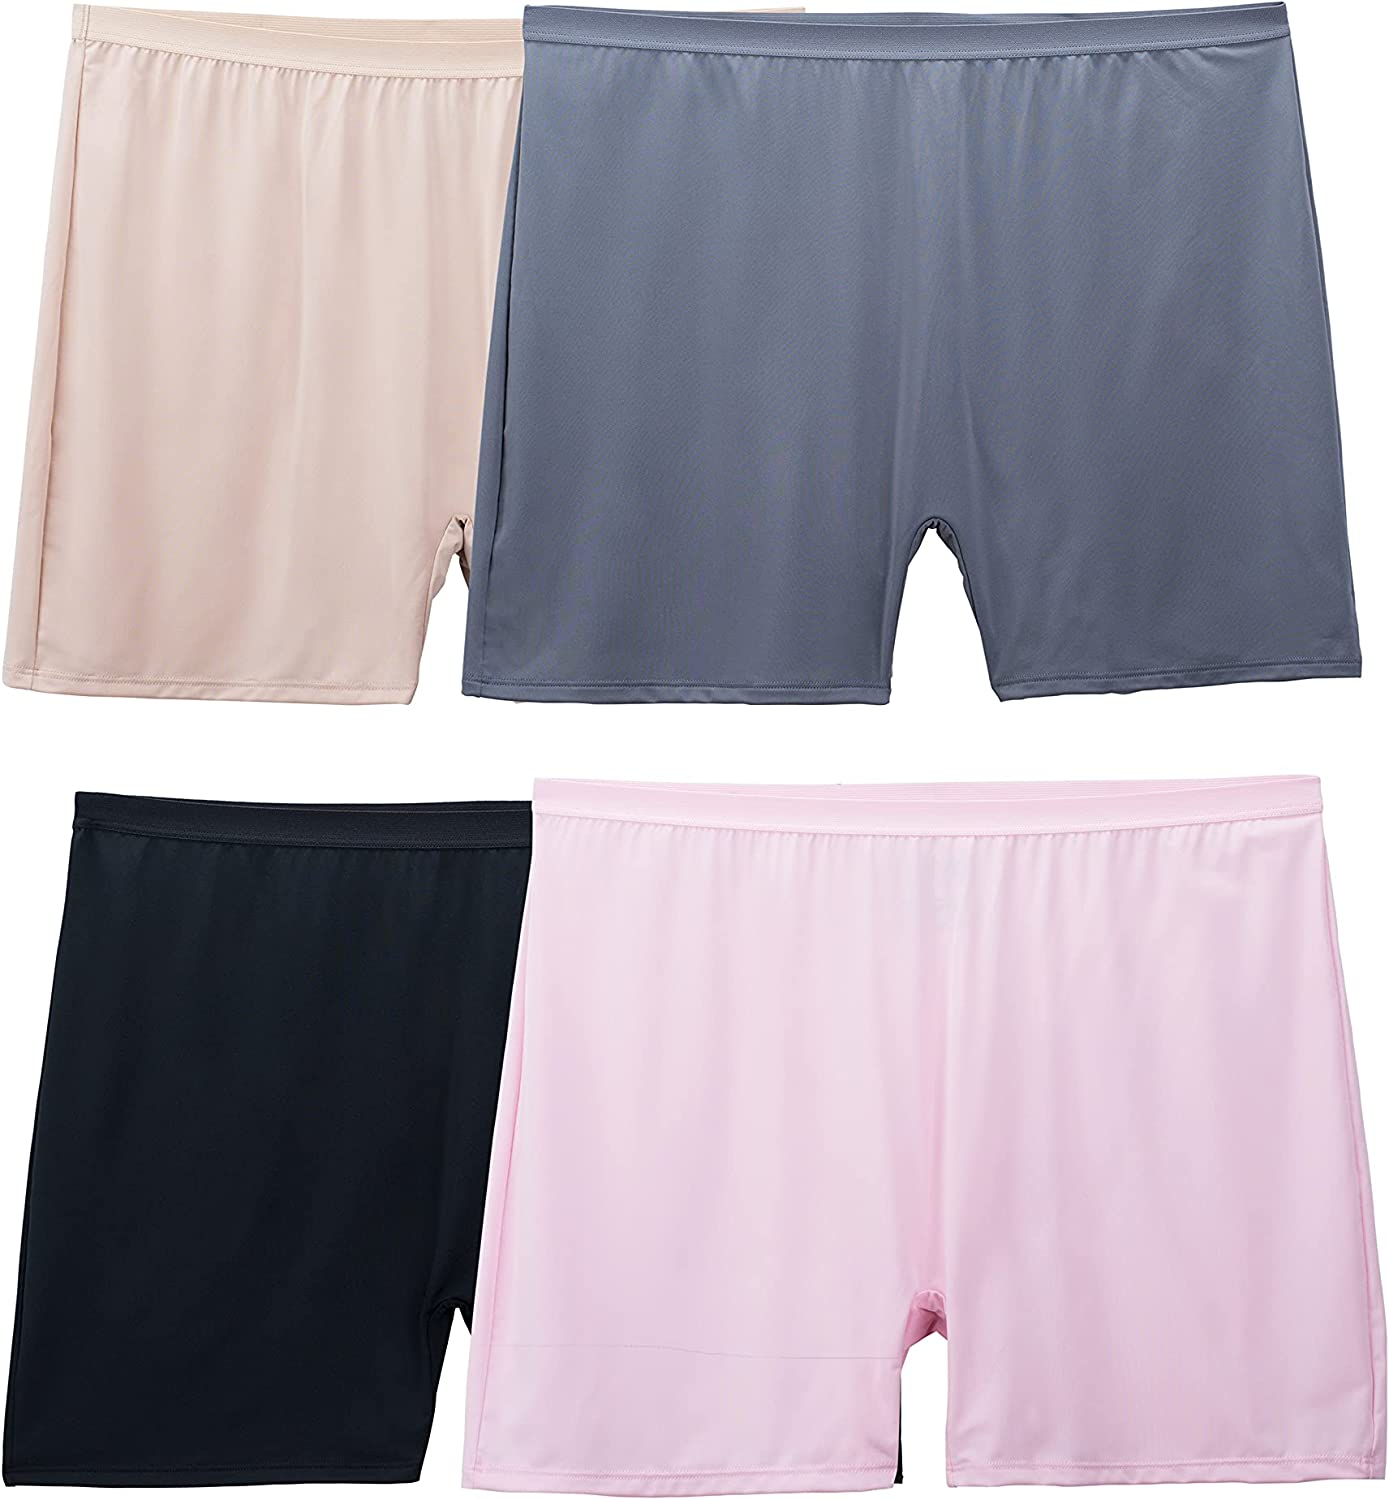 Fruit Of The Loom Women's Fit for Me Plus Size Underwear